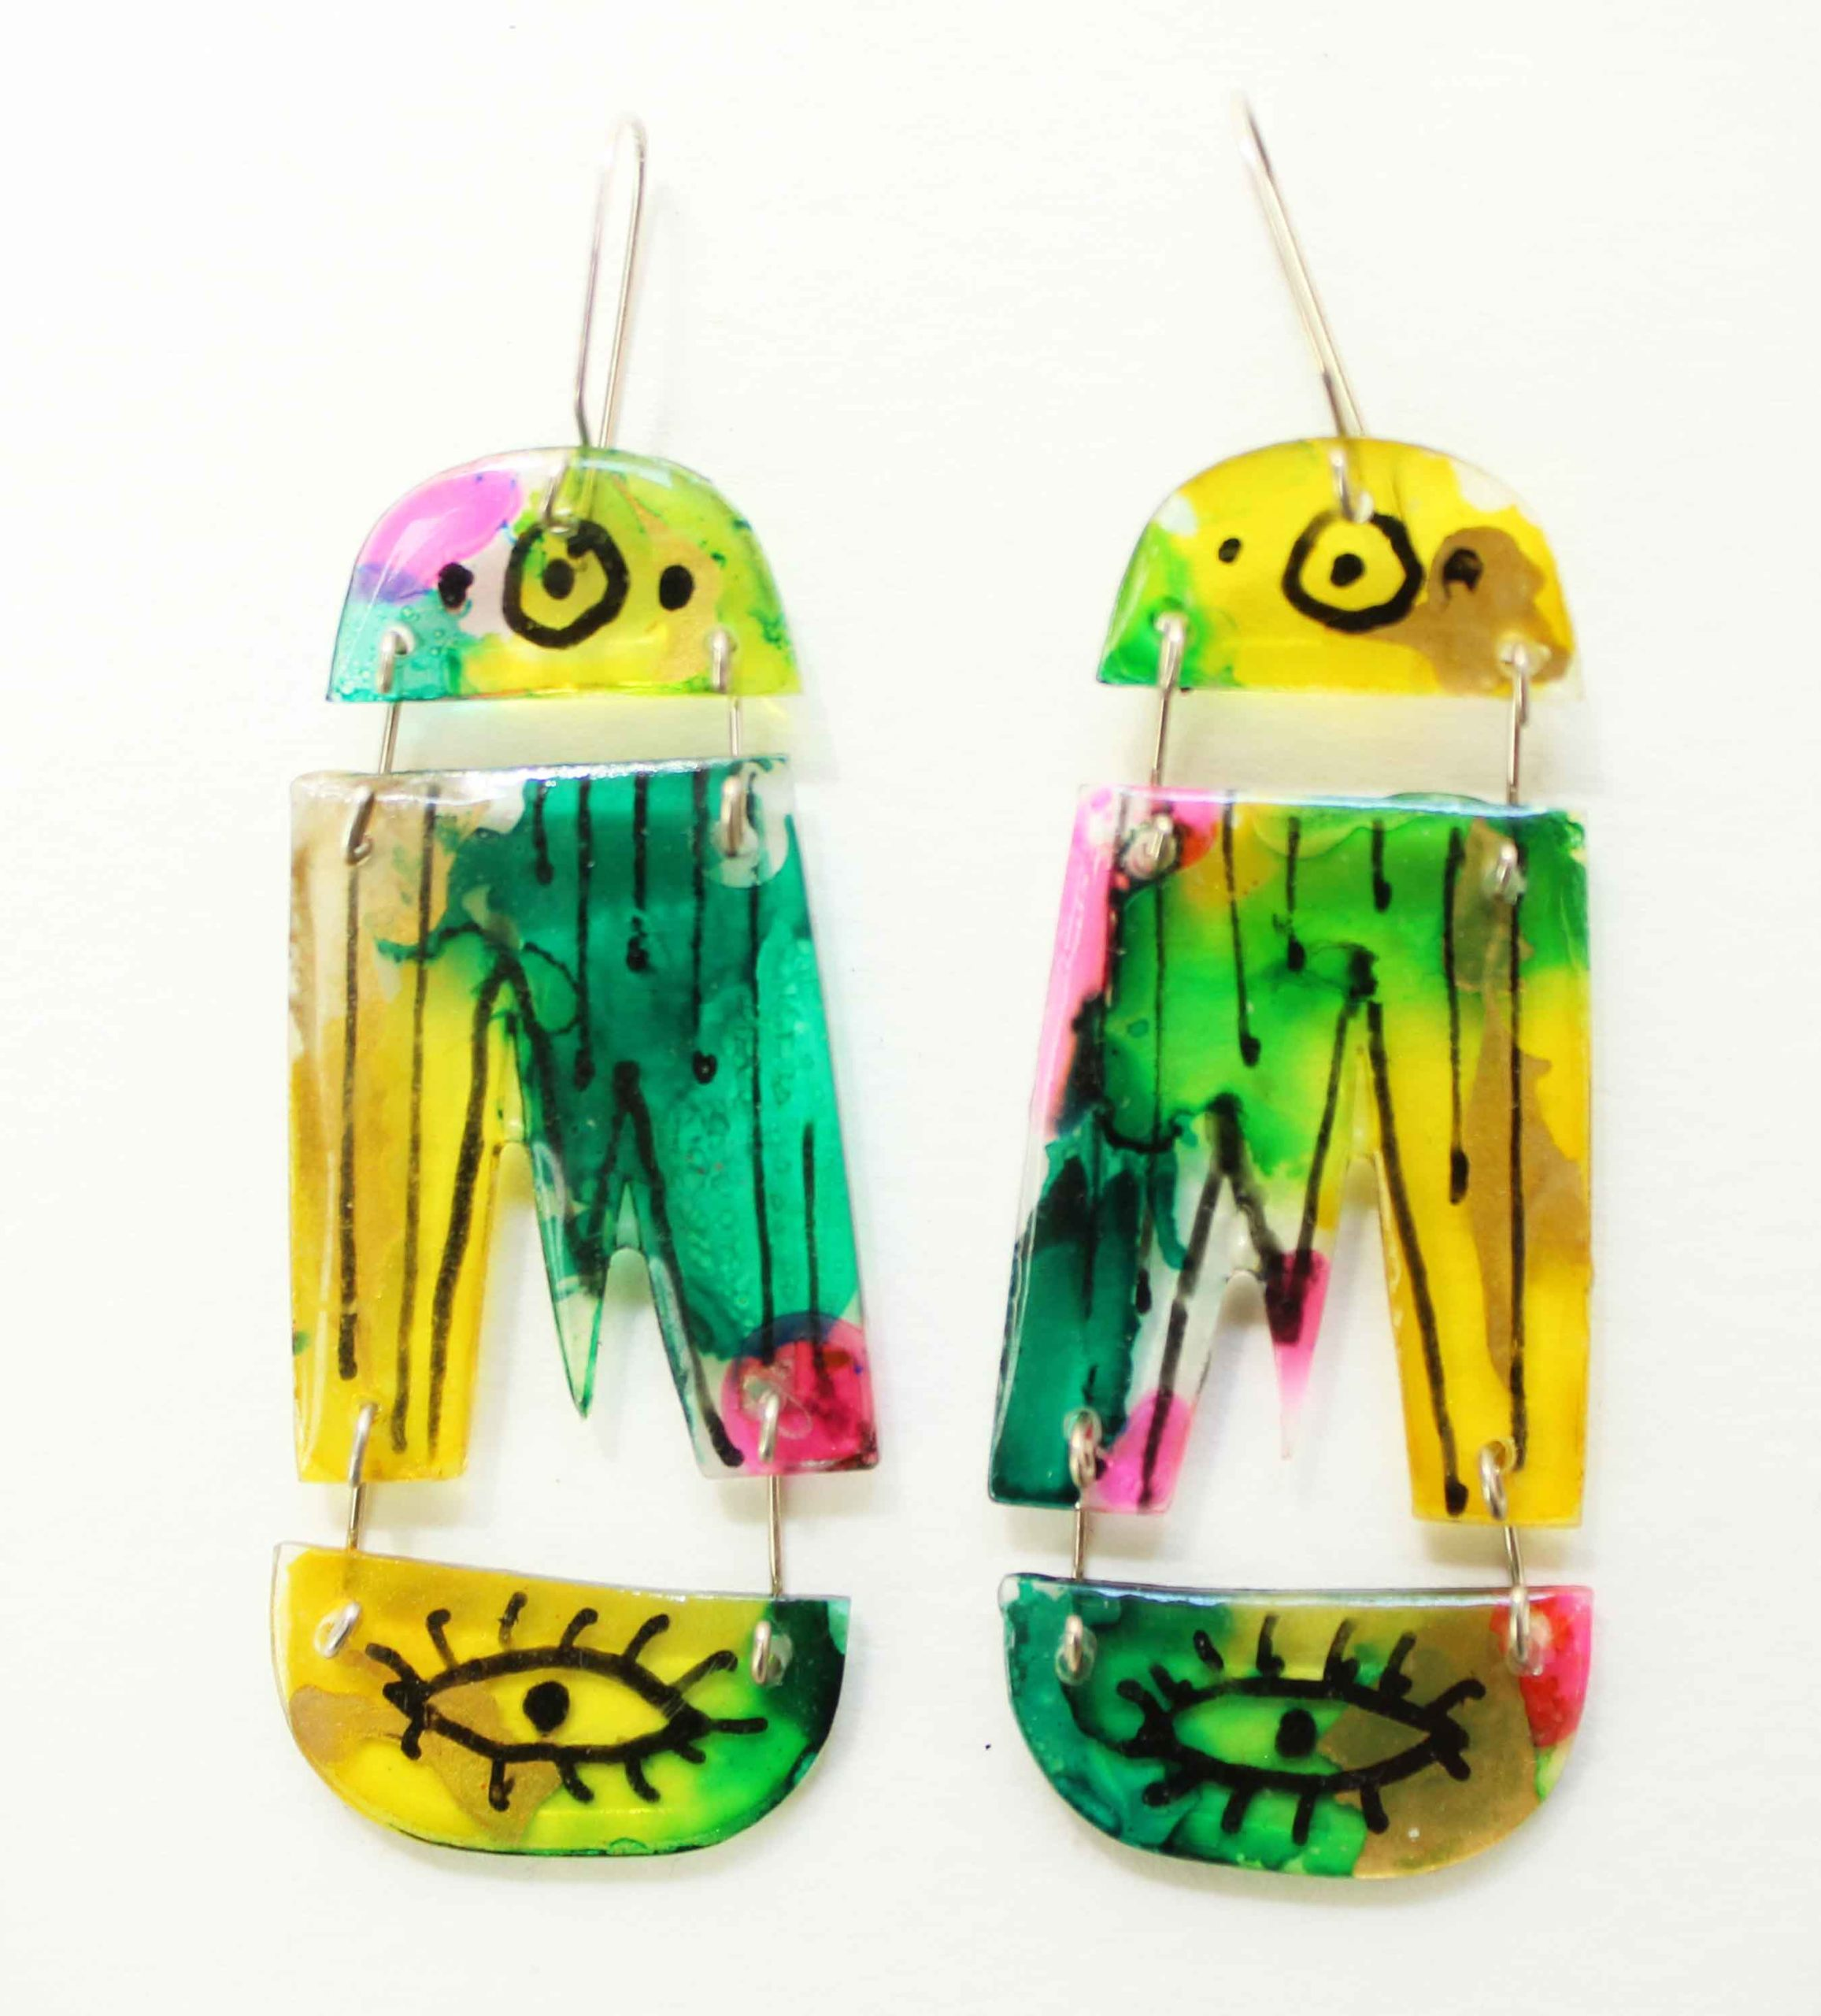 """Neely Goniodsky Green and Yellow, 2021 Acrylic, resin and sterling silver 2 ½"""" long"""